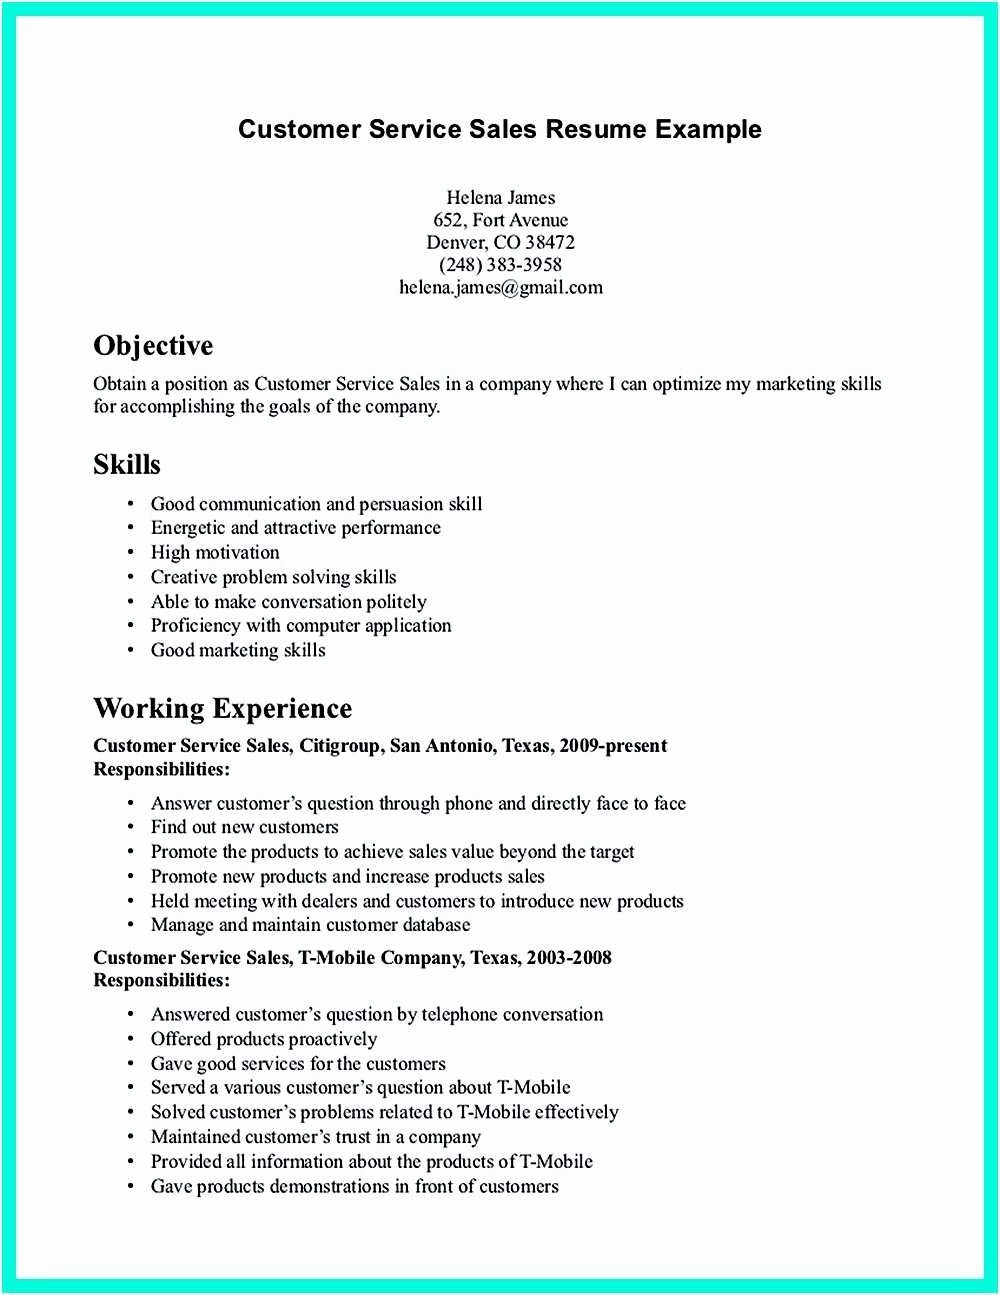 Pharmaceutical Sales Rep Resume - Pharmaceutical Sales Resume Awesome Medical Representatives Resume